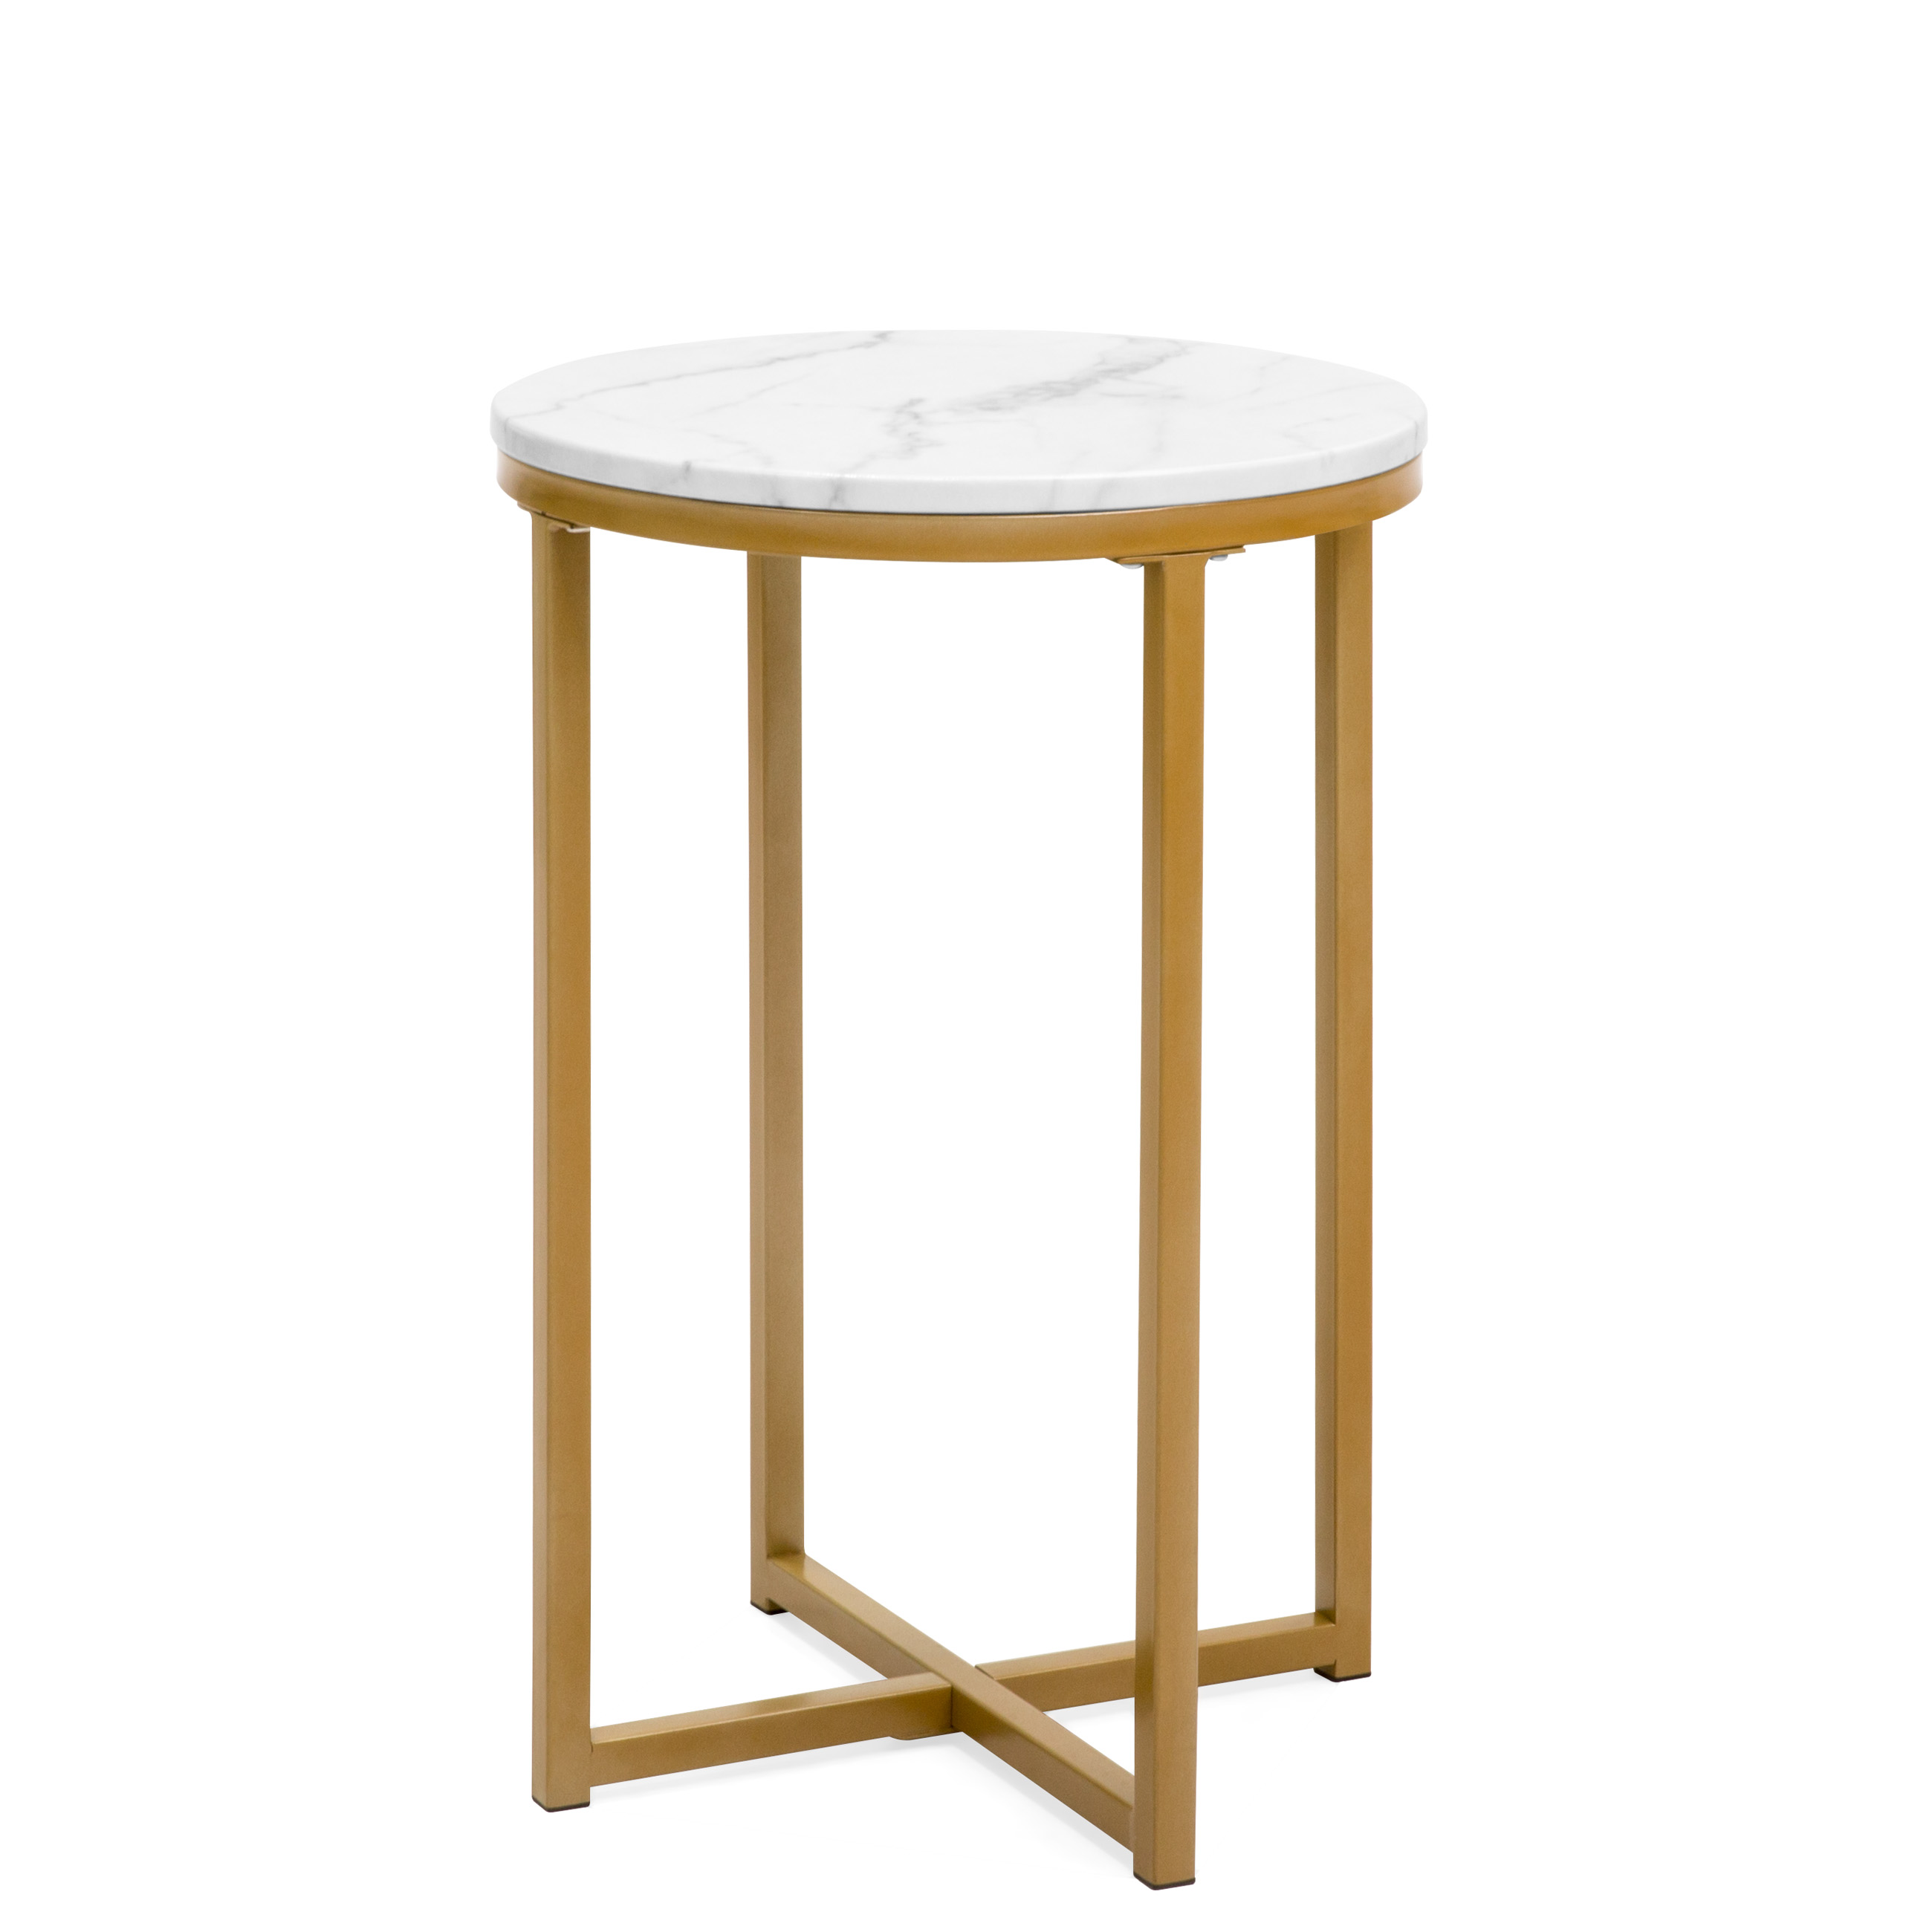 best choice products modern living room round side end accent white table coffee nightstand metal frame faux marble top gold short skinny patio dining sets unique wall clocks